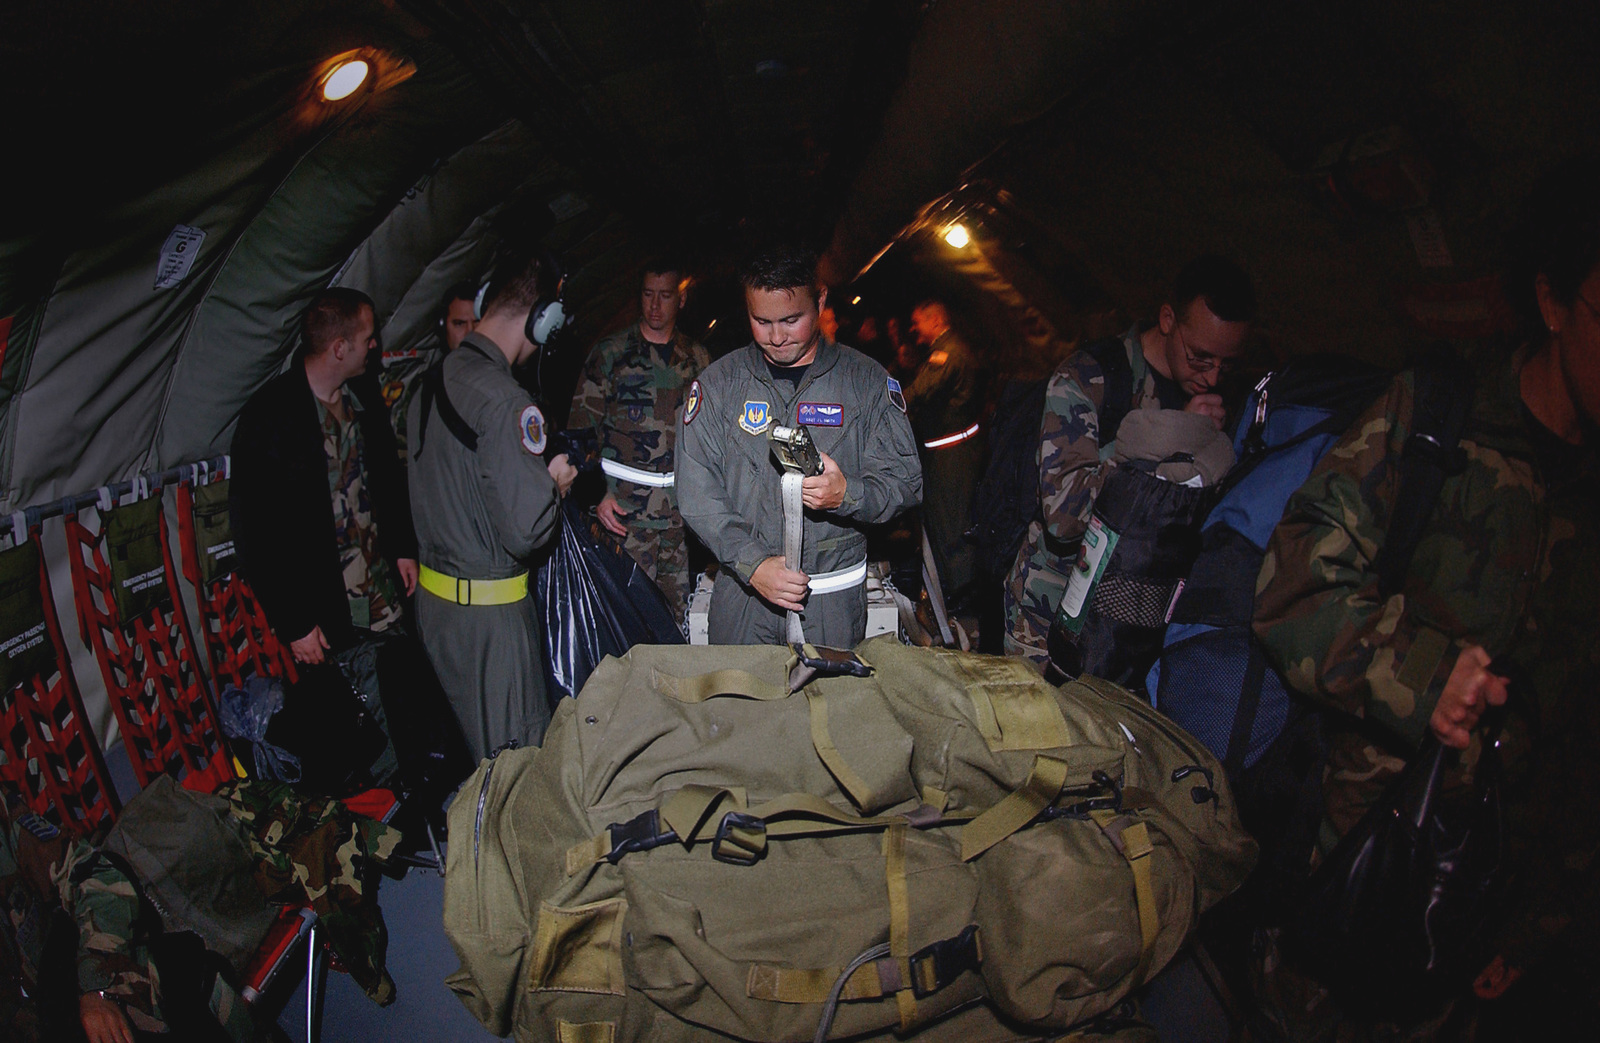 U.S. Air Force STAFF SGT. J.L. Smith, Boom Operator, 351st Air Refueling Squadron, 100th Air Refueling Wing, tightens down a strap to secure baggage before departing from RAF Mildenhall, U.K., on Oct. 20, 2004.(U.S. Air Force PHOTO by AIRMAN 1ST Class Franklin J. Perkins) (RELEASED)